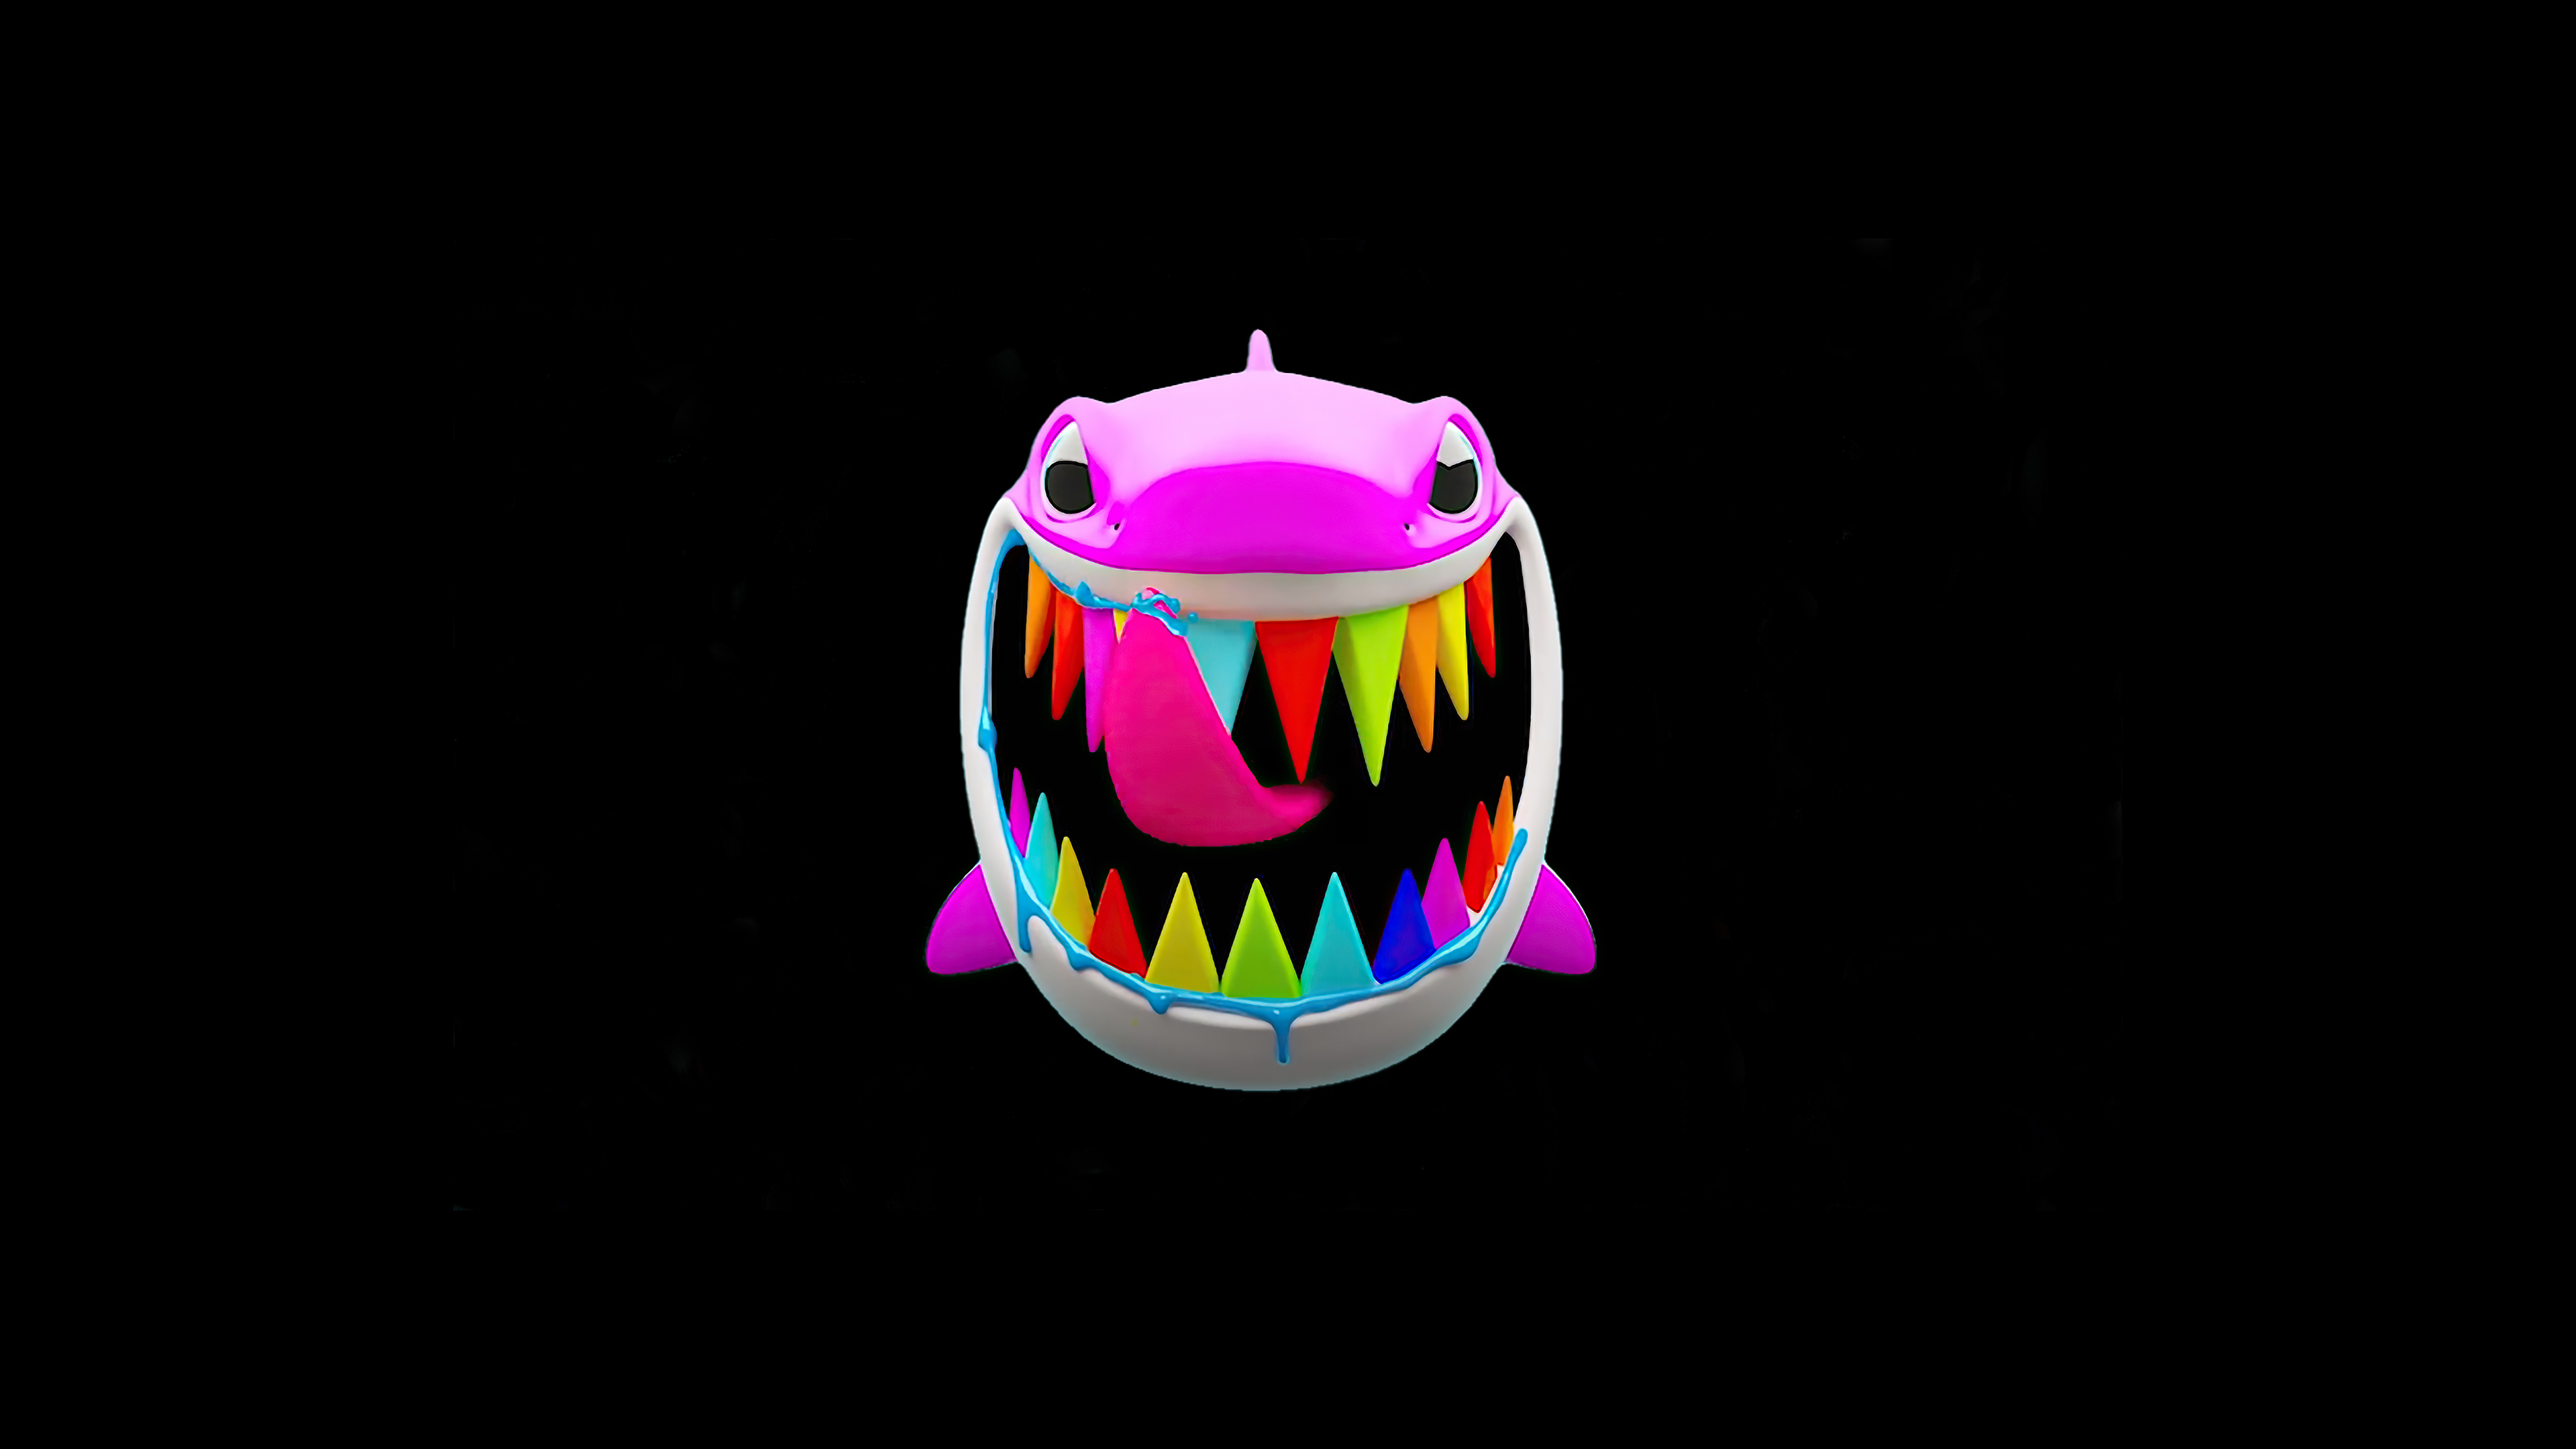 Shark 6ix9ine Minimal 4k Hd Music 4k Wallpapers Images Backgrounds Photos And Pictures